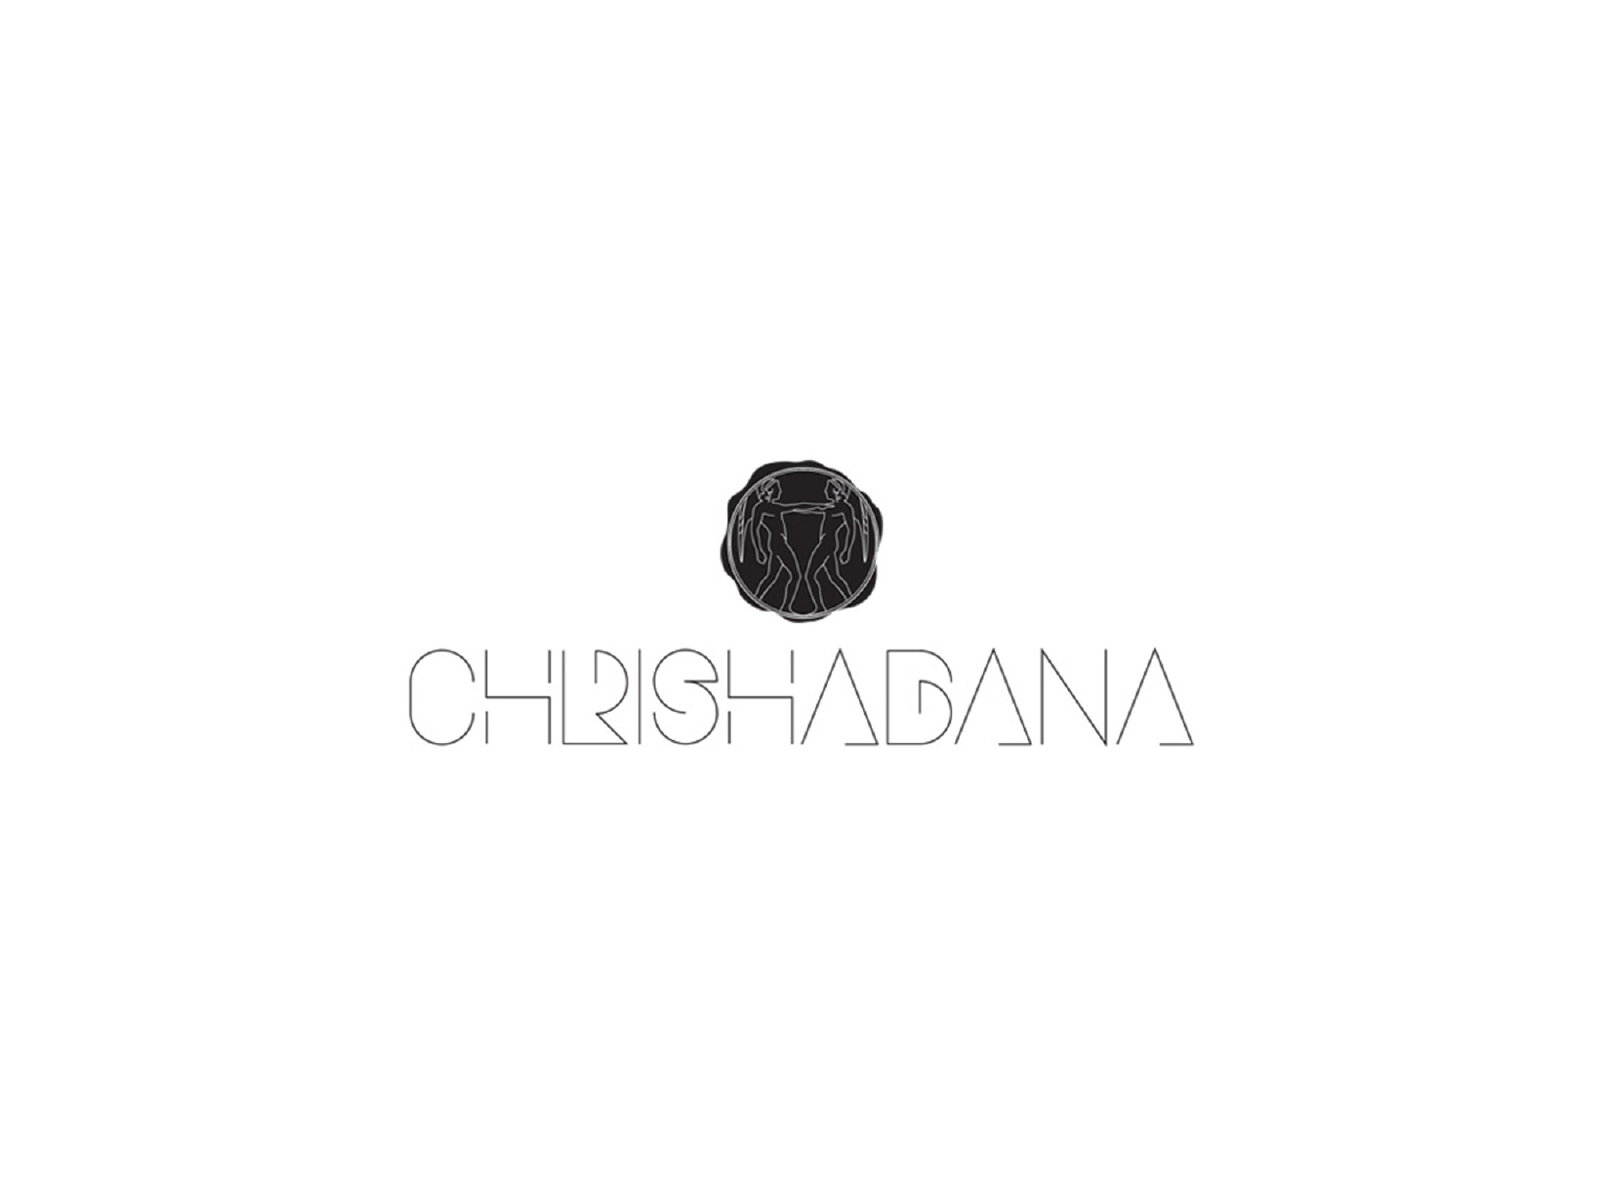 image of Chrishabana